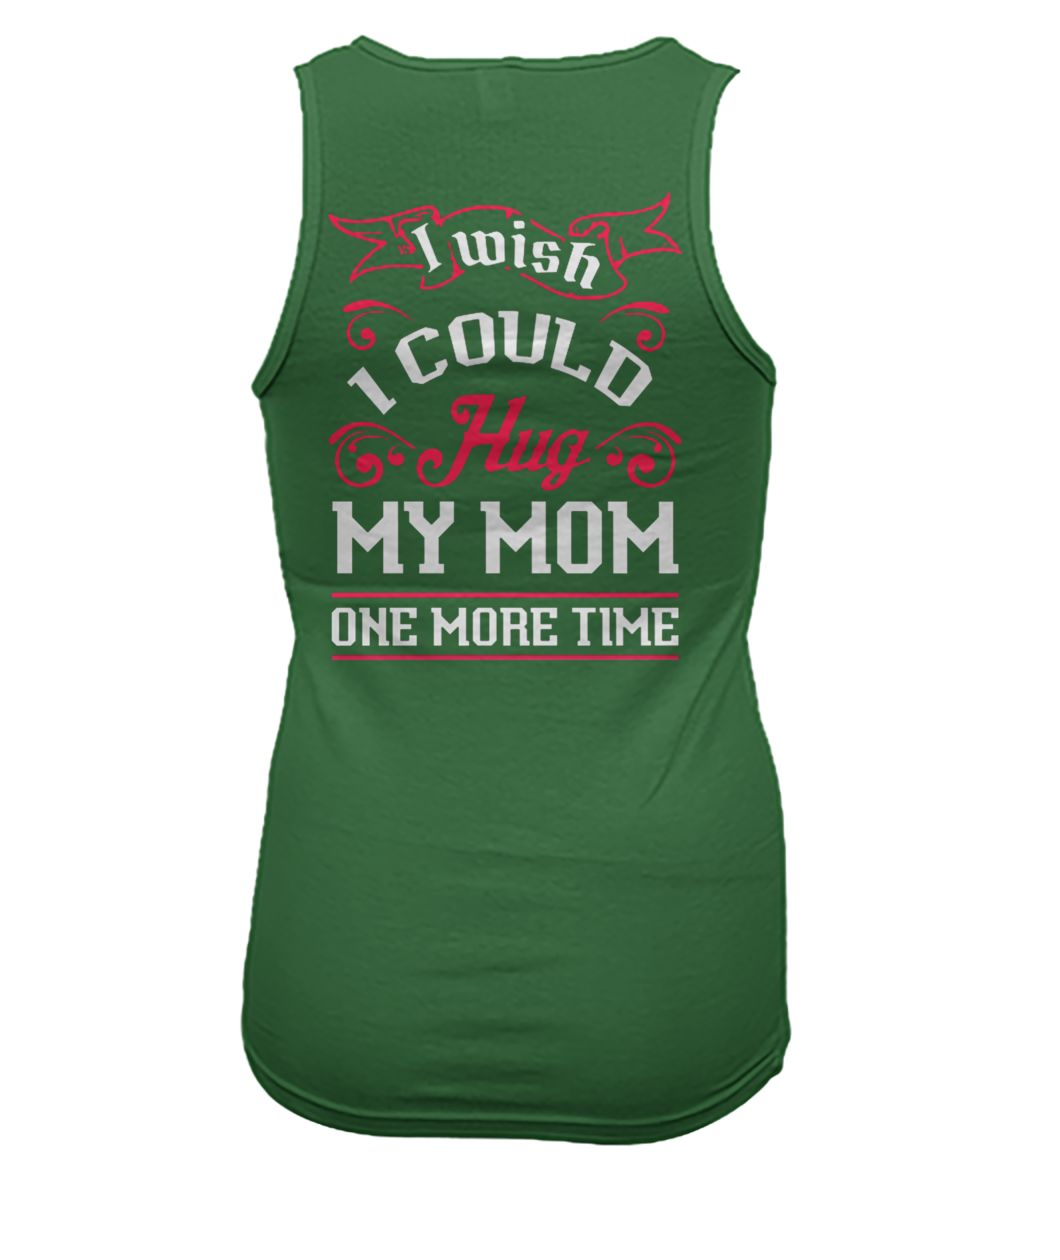 I wish I could hug my mom one more time women's tank top